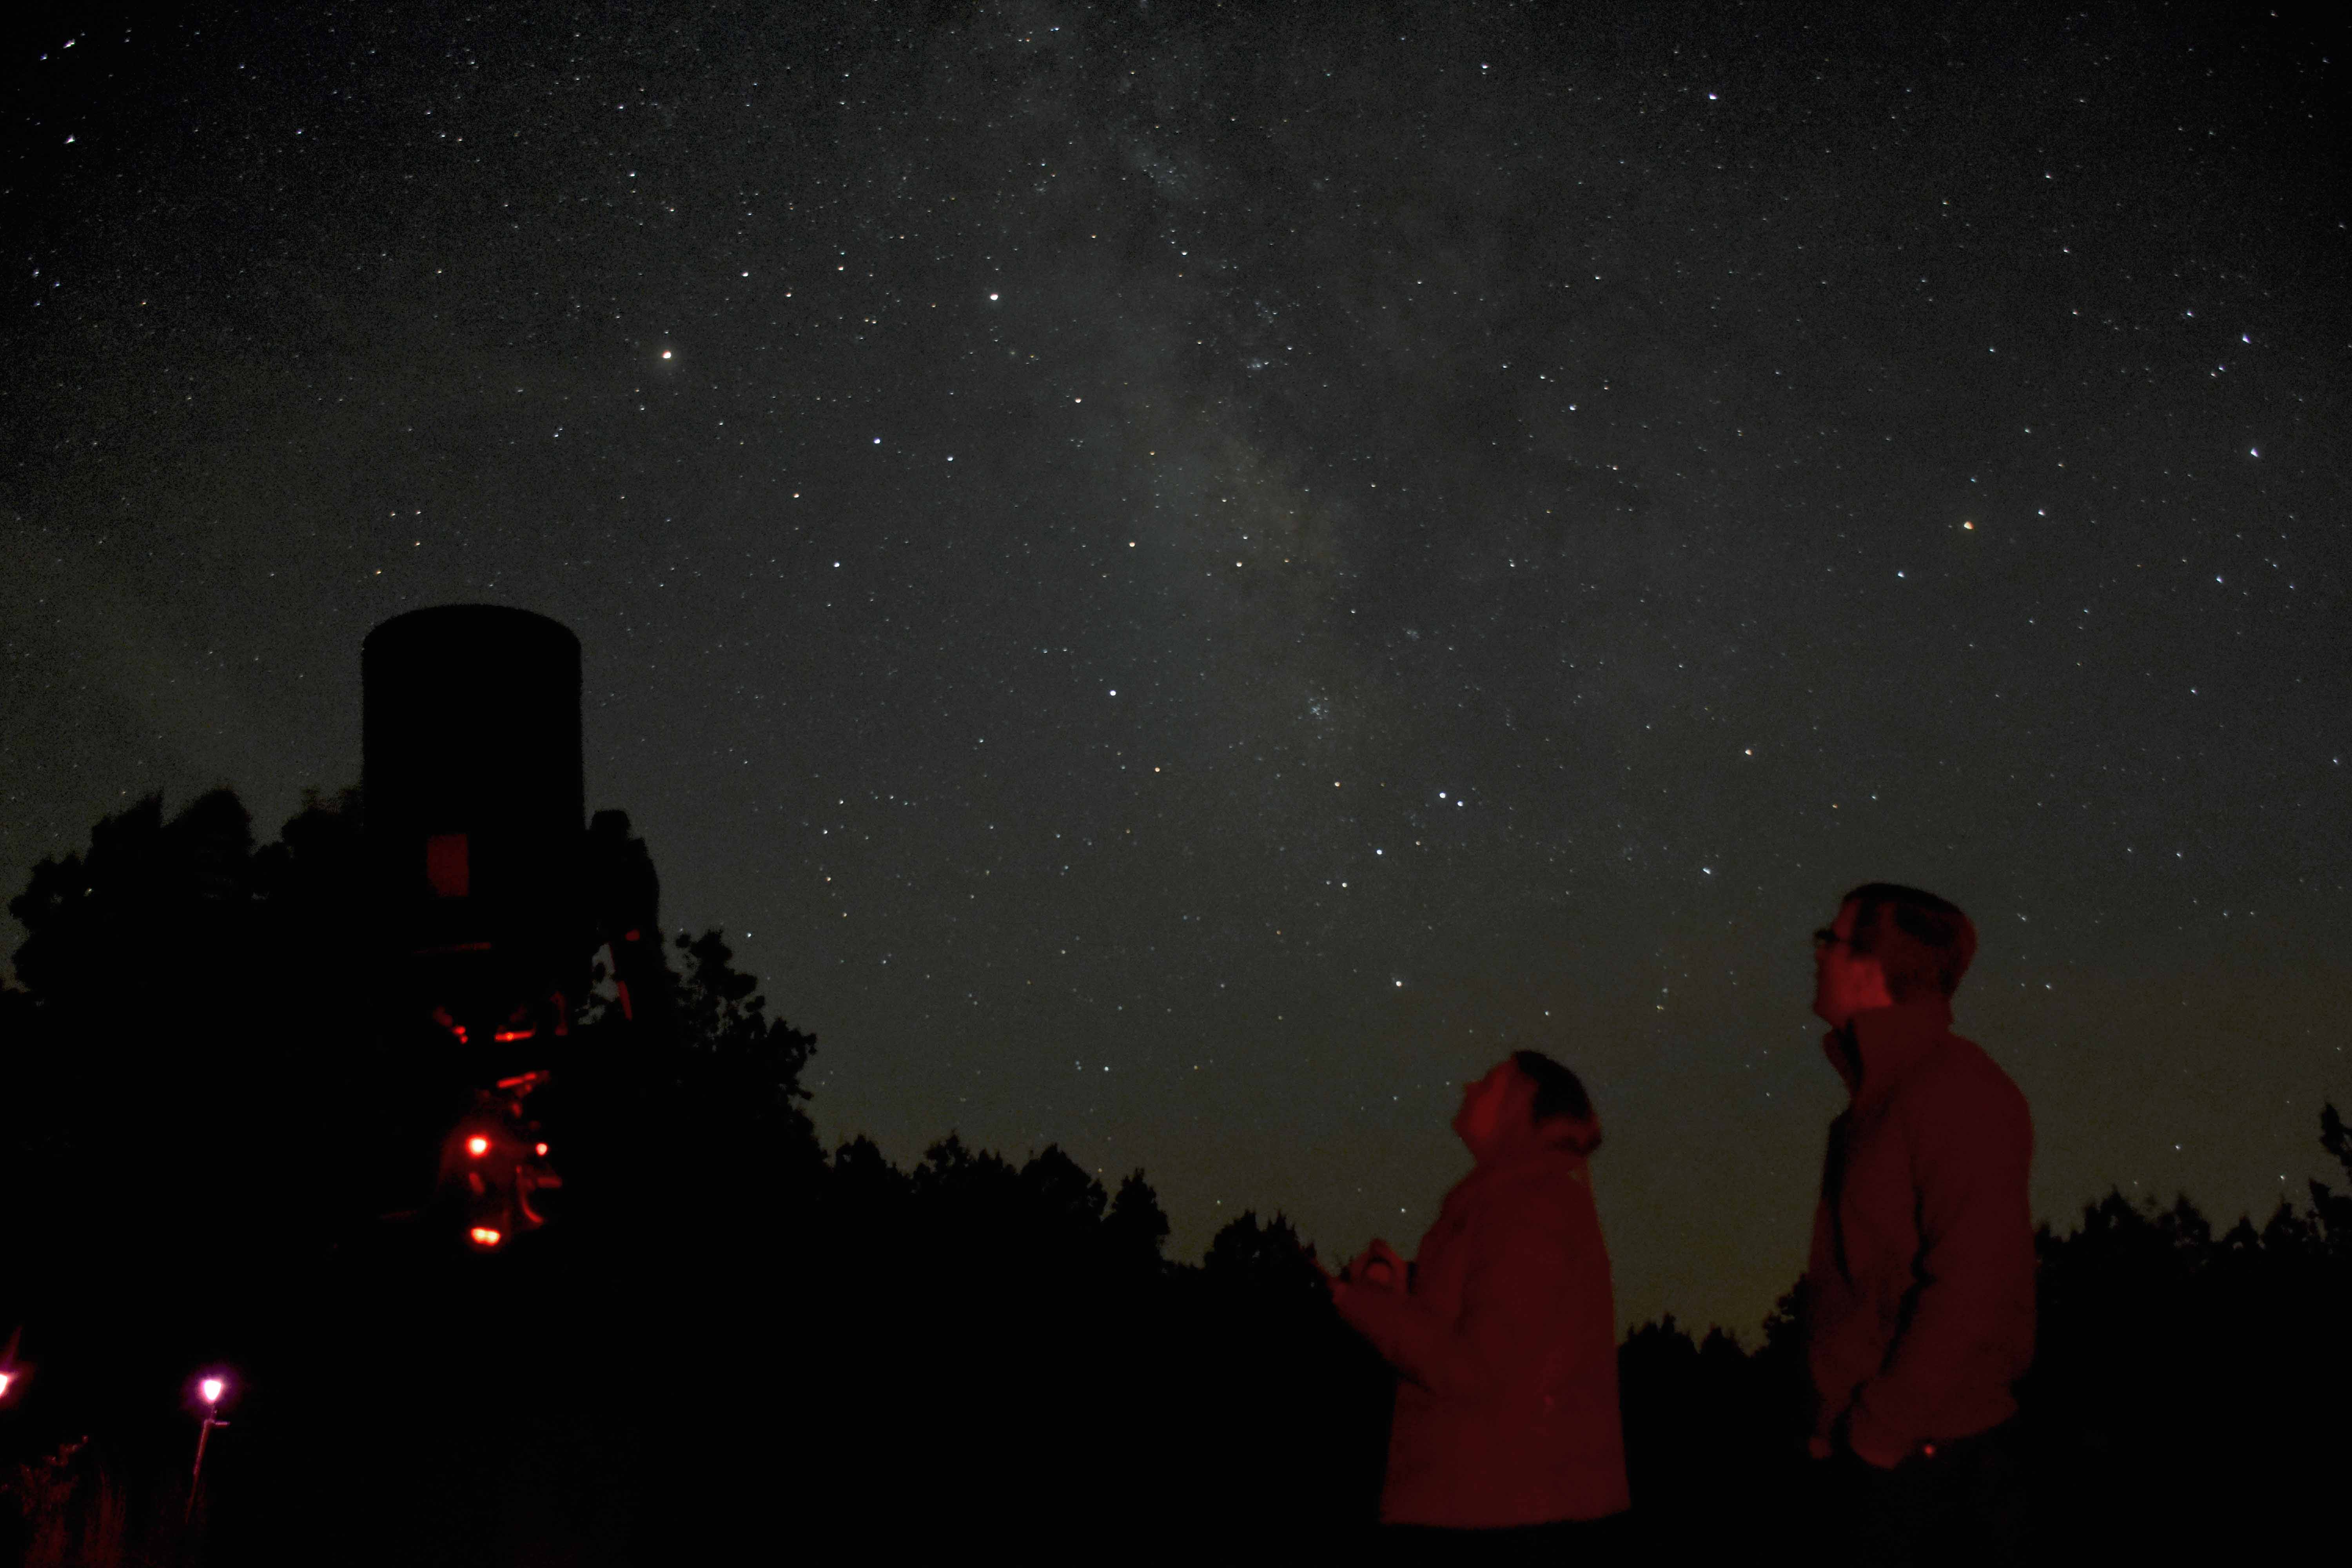 This photo of the Milky Way as seen from our Dark Site was taken by Dr. Perera.